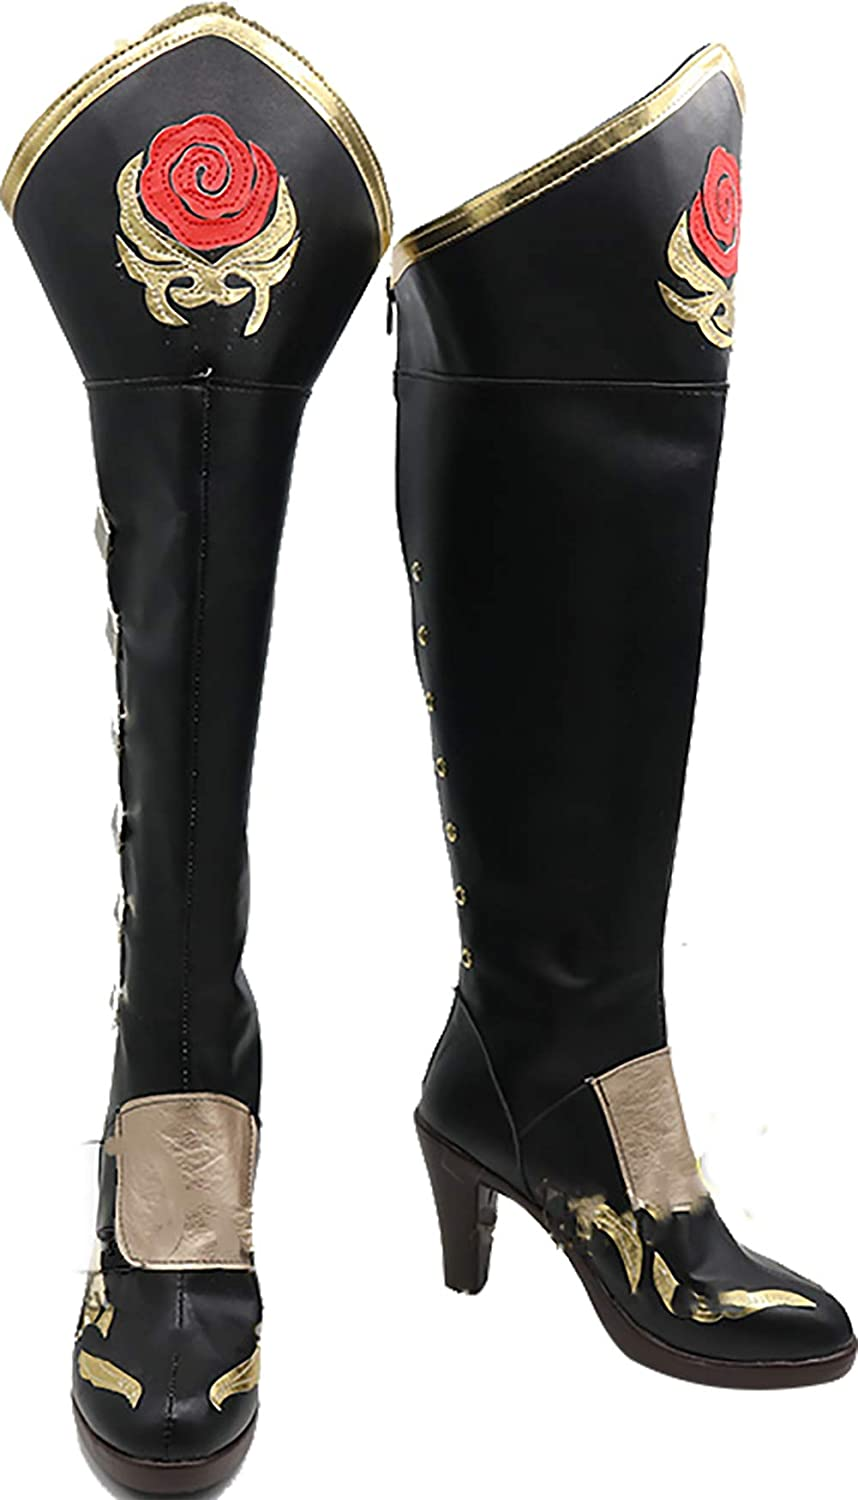 GSFDHDJS Cosplay Boots shoes for Black Butler Grell Sutcliff black